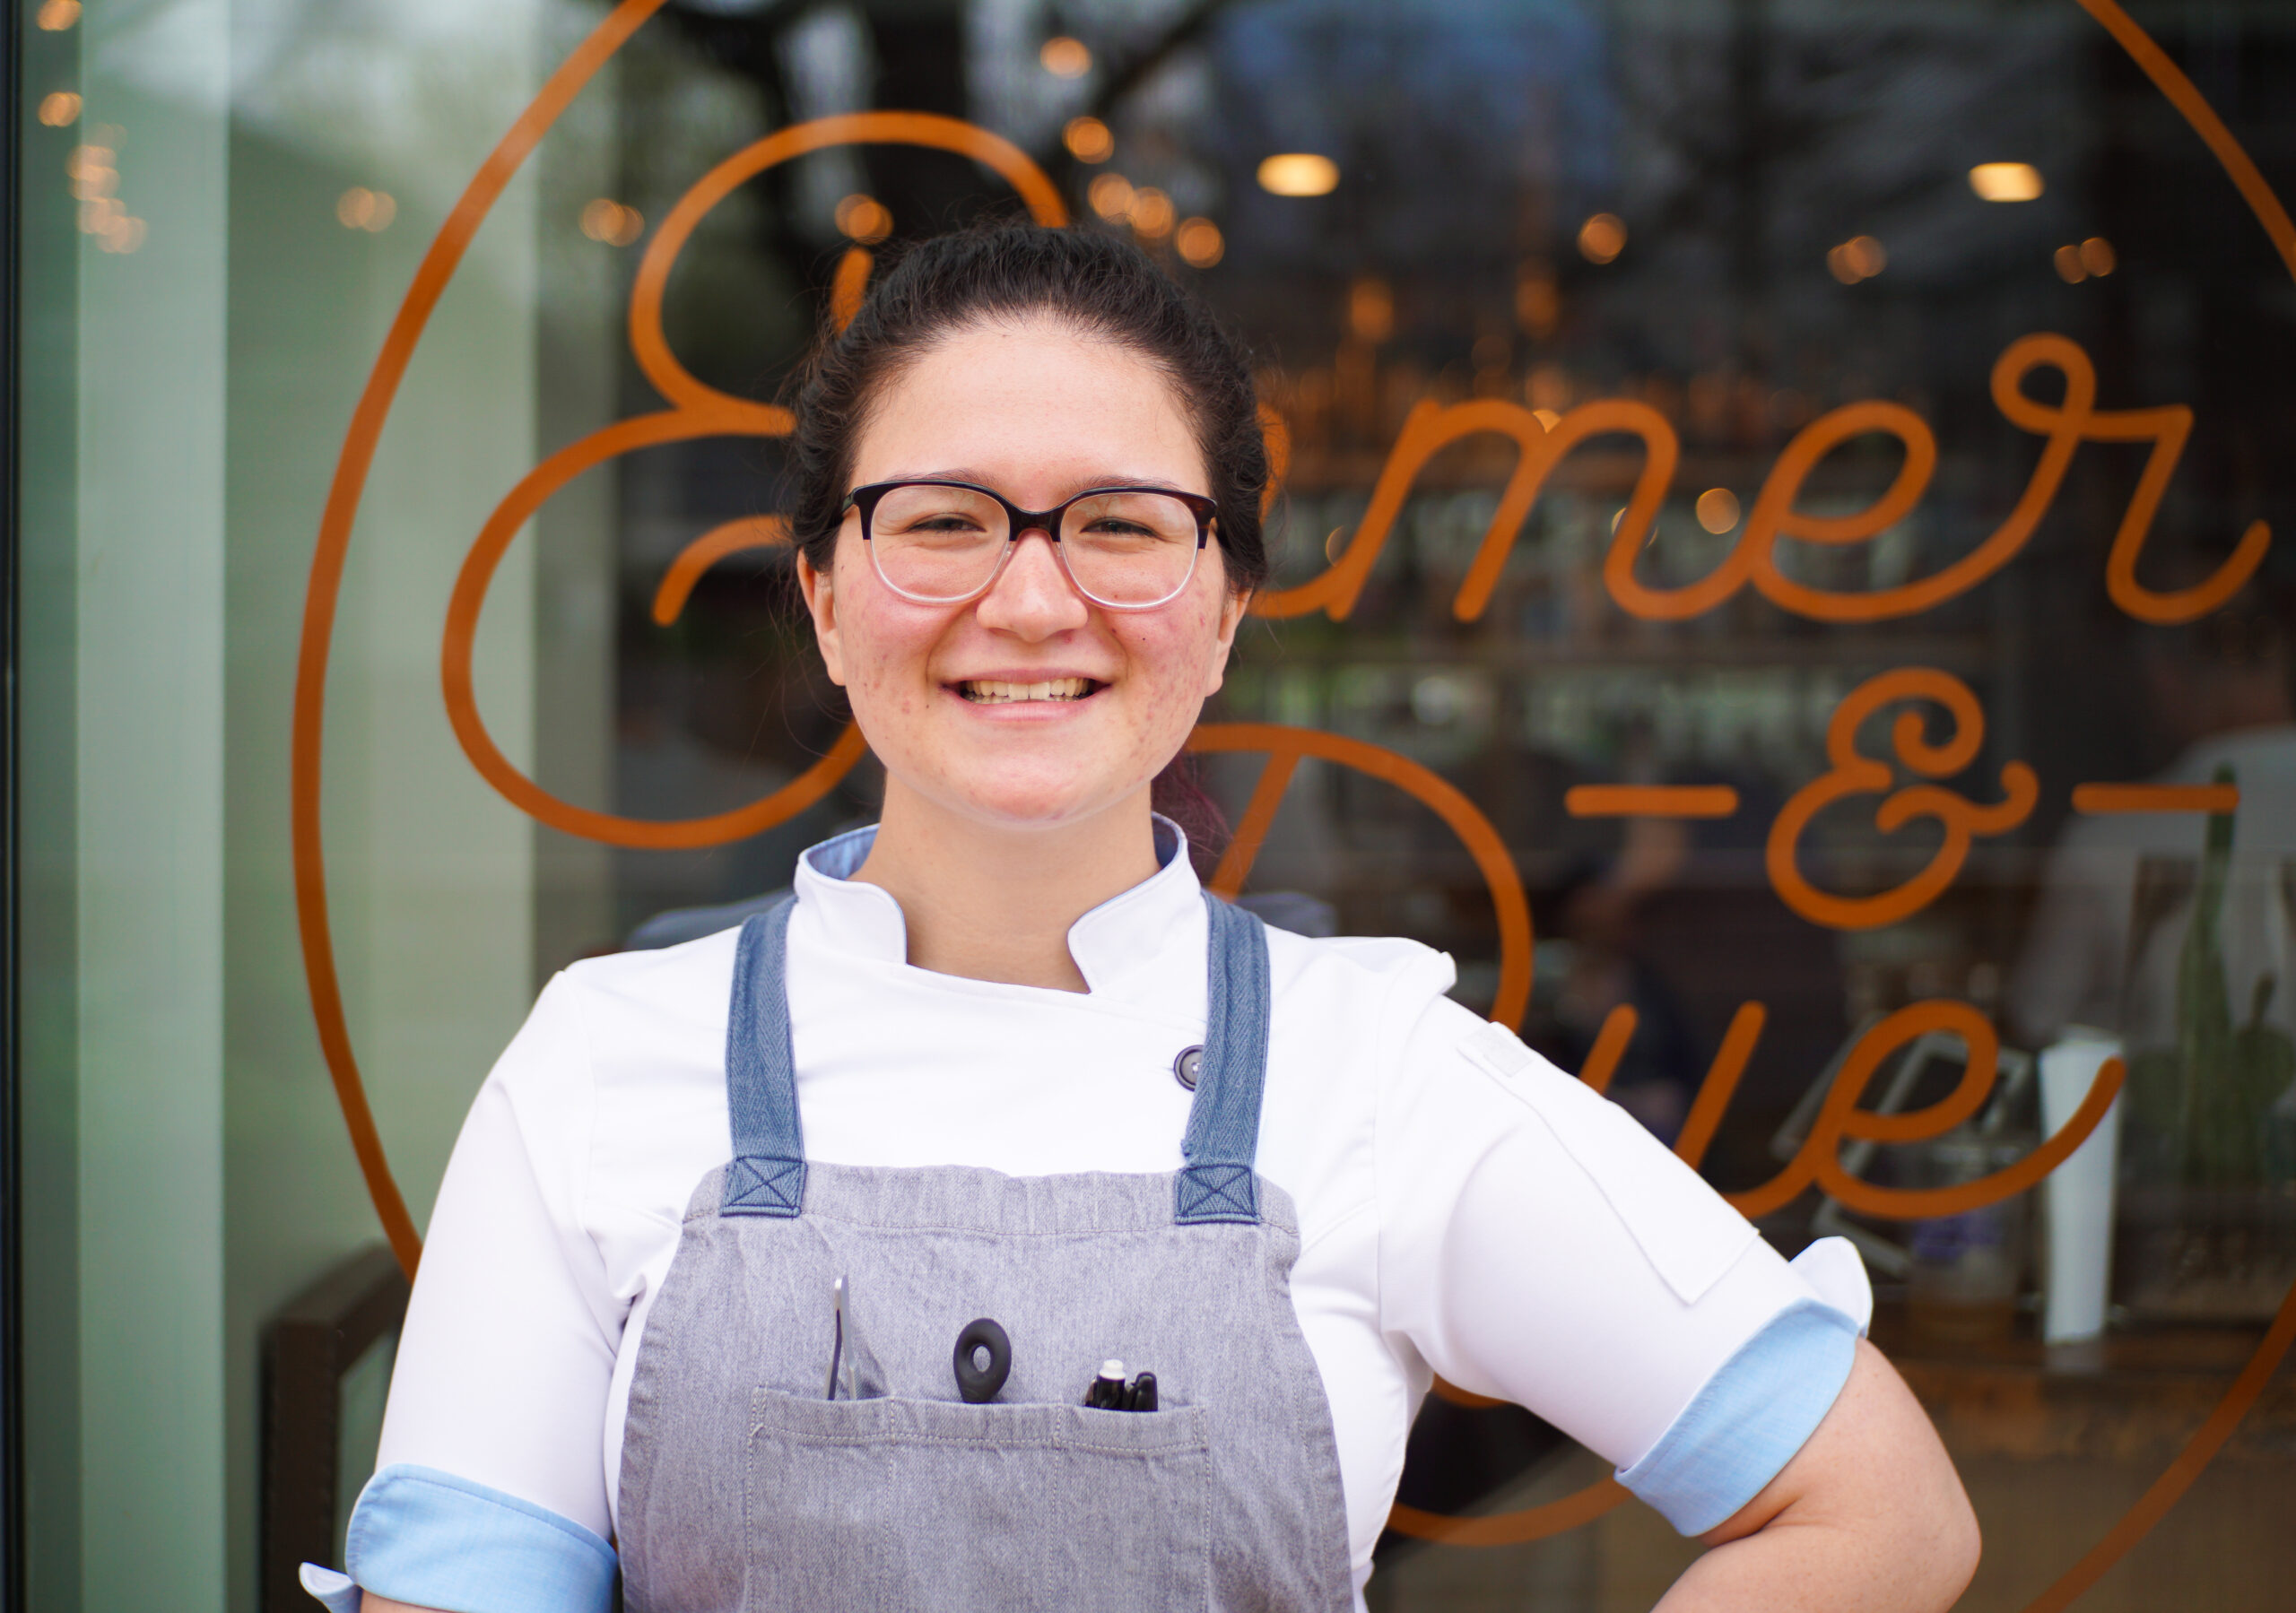 Aiko Lyne Head Pastry Chef at Emmer & Rye